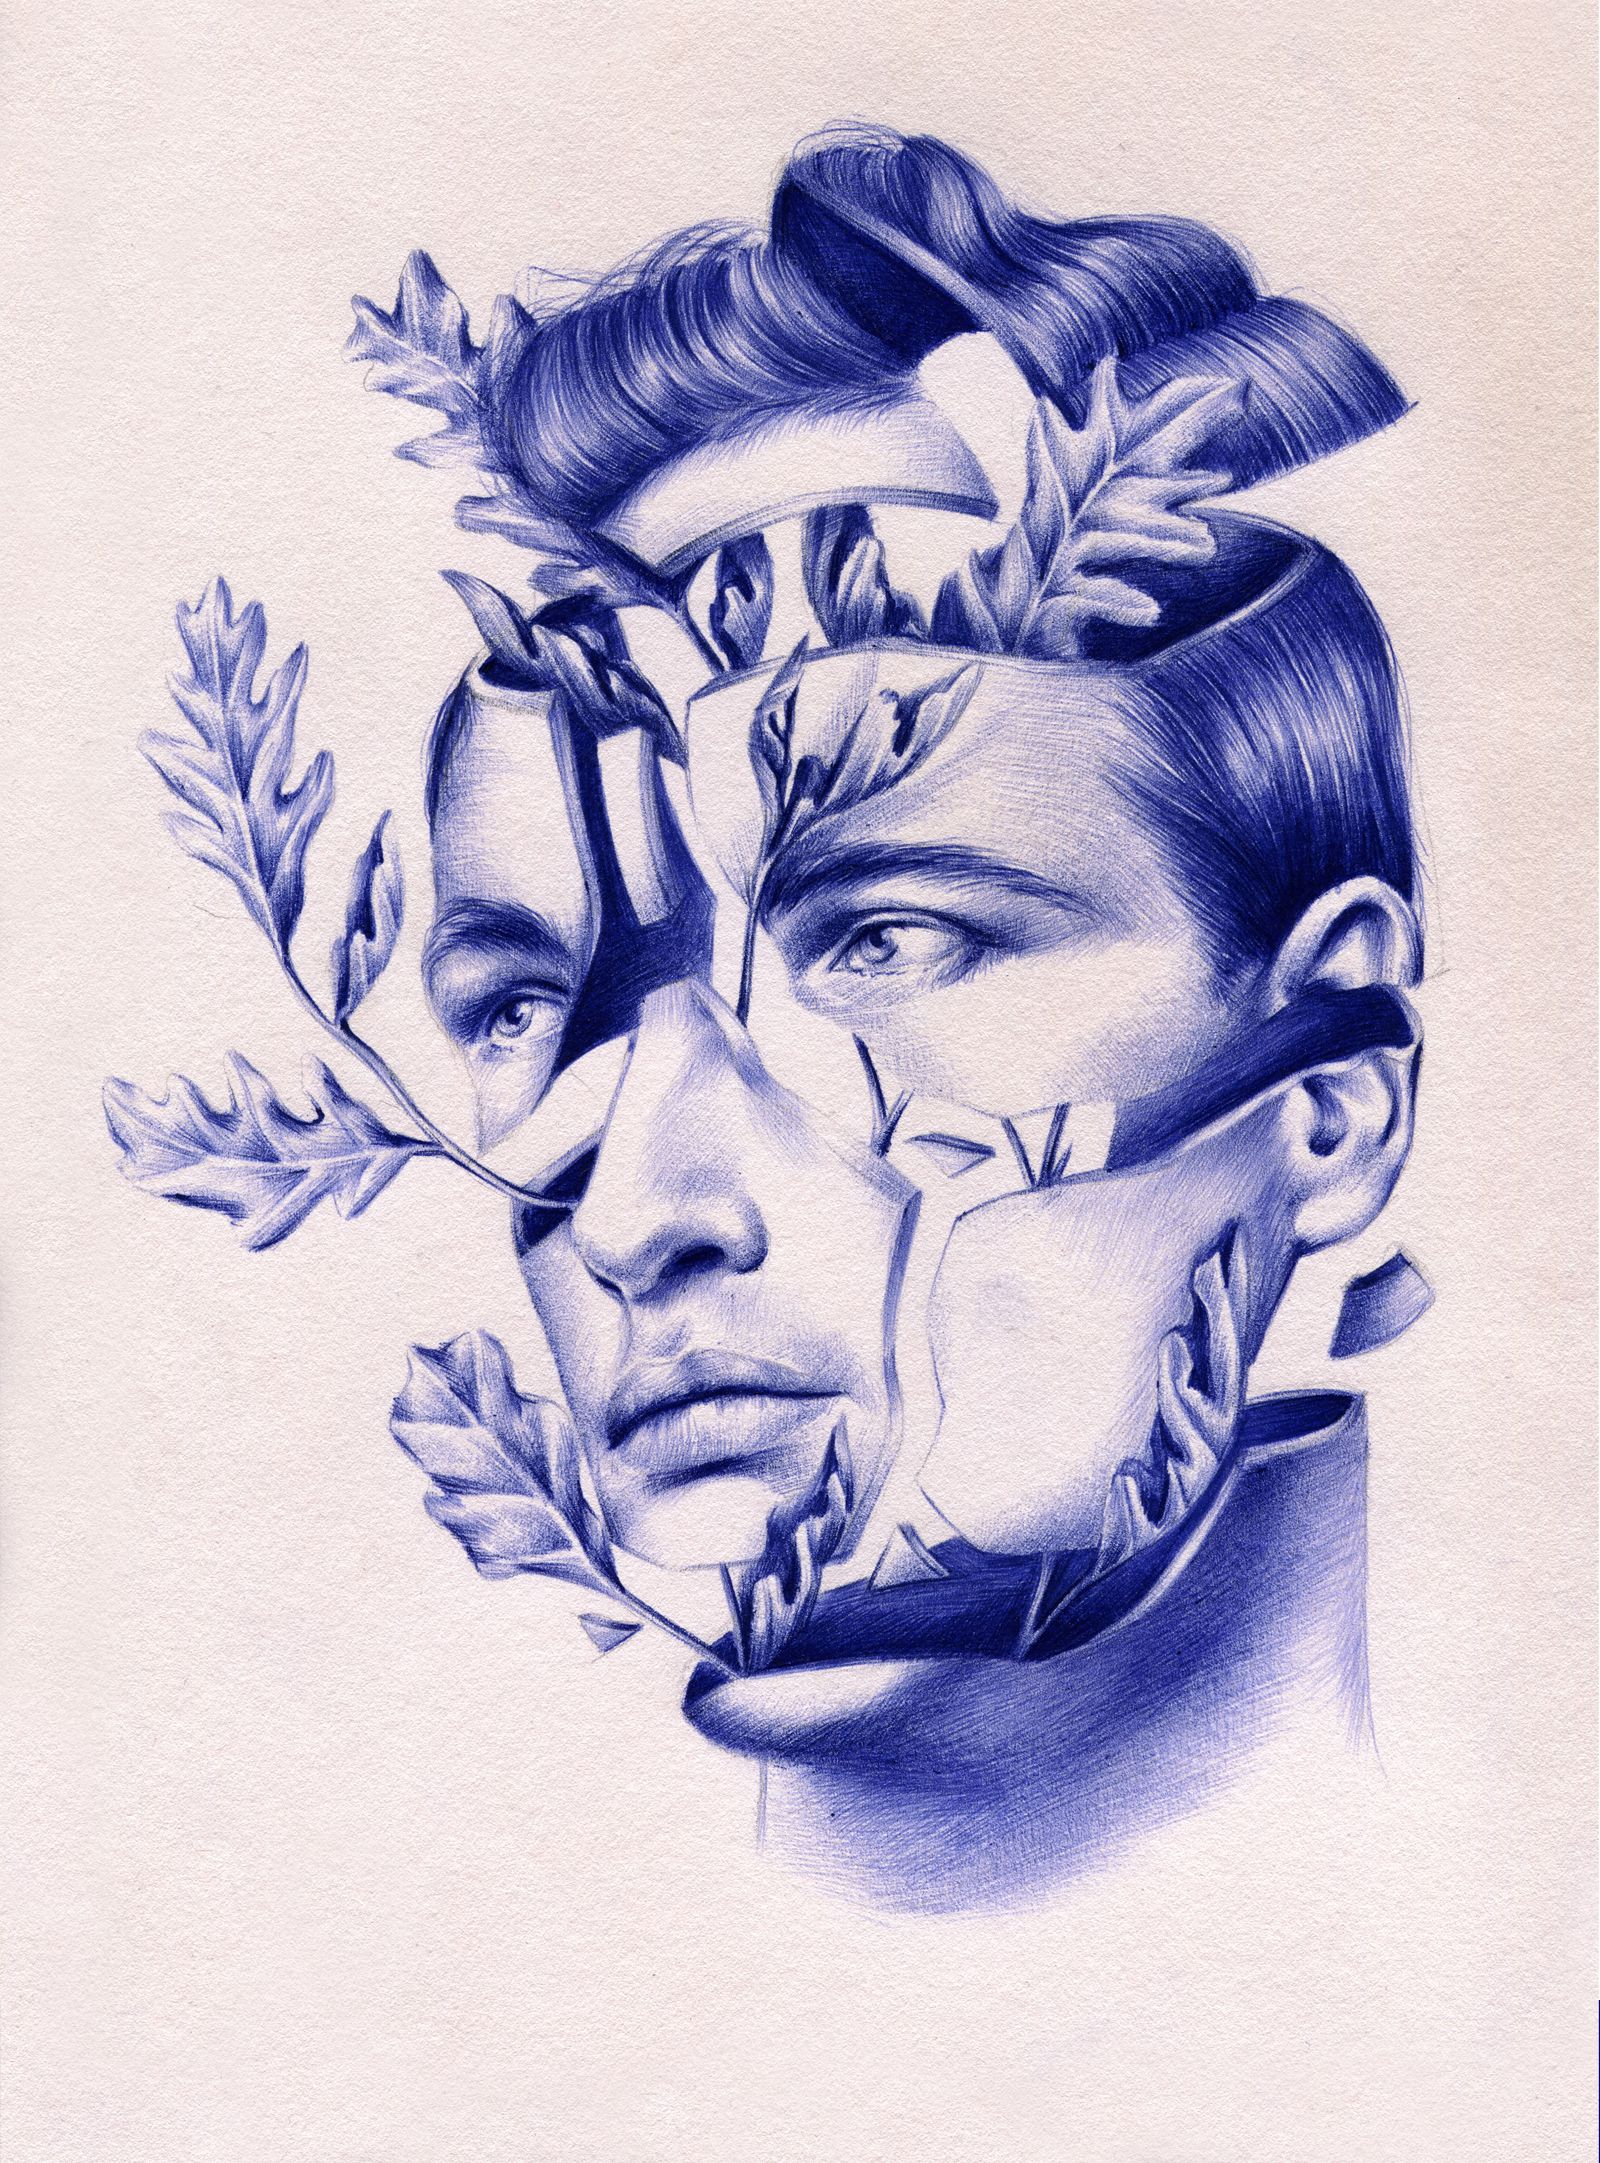 These gorgeous drawings are 100 ballpoint pen ballpoint